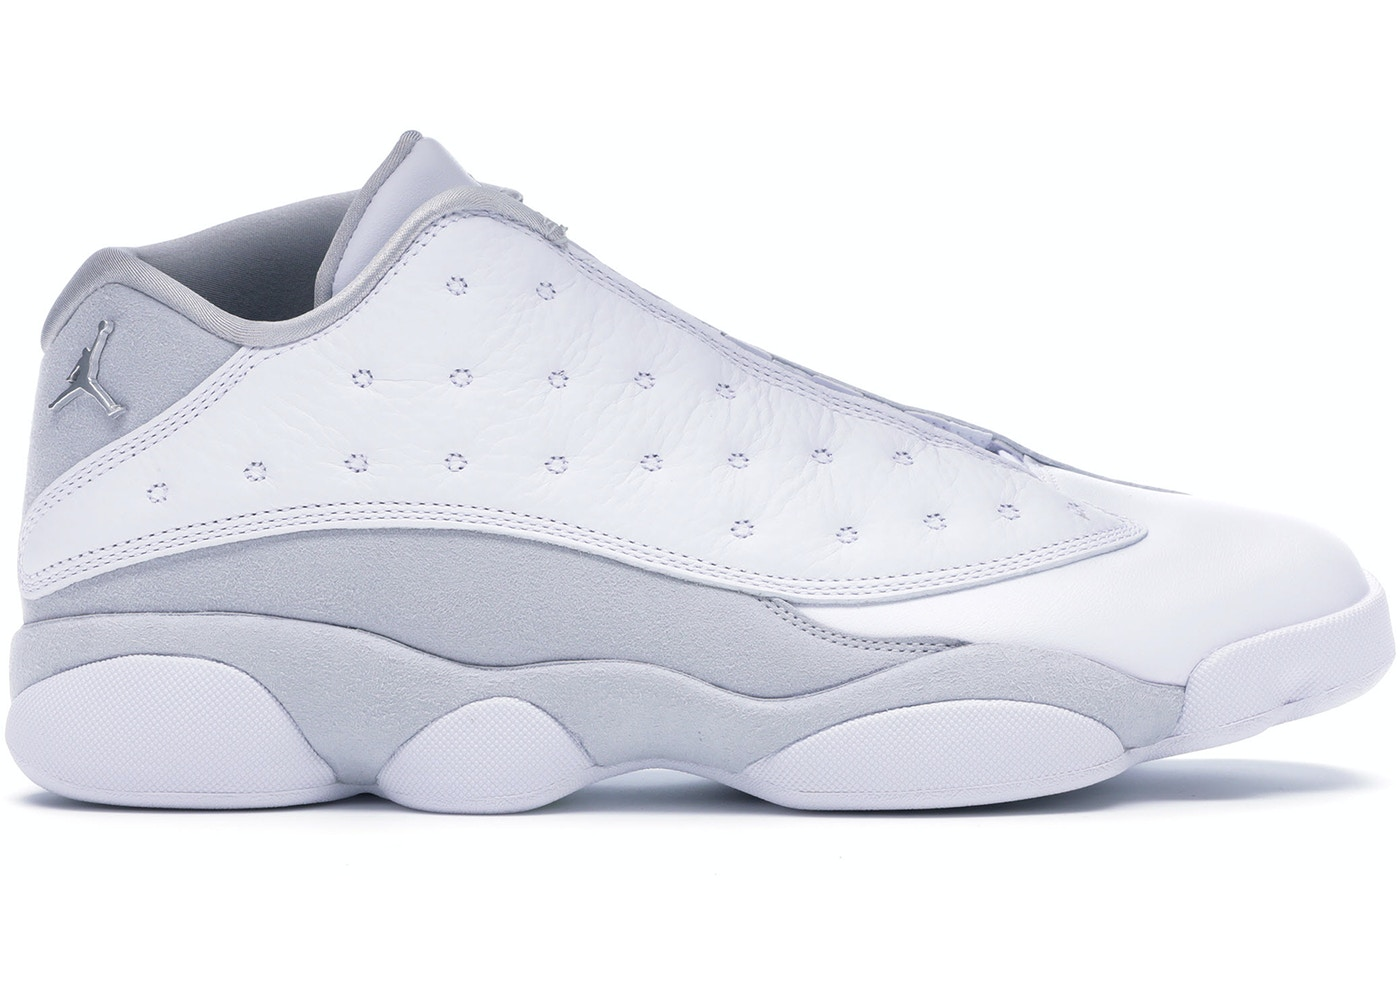 new concept cf476 e85f9 Jordan 13 Retro Low Pure Platinum